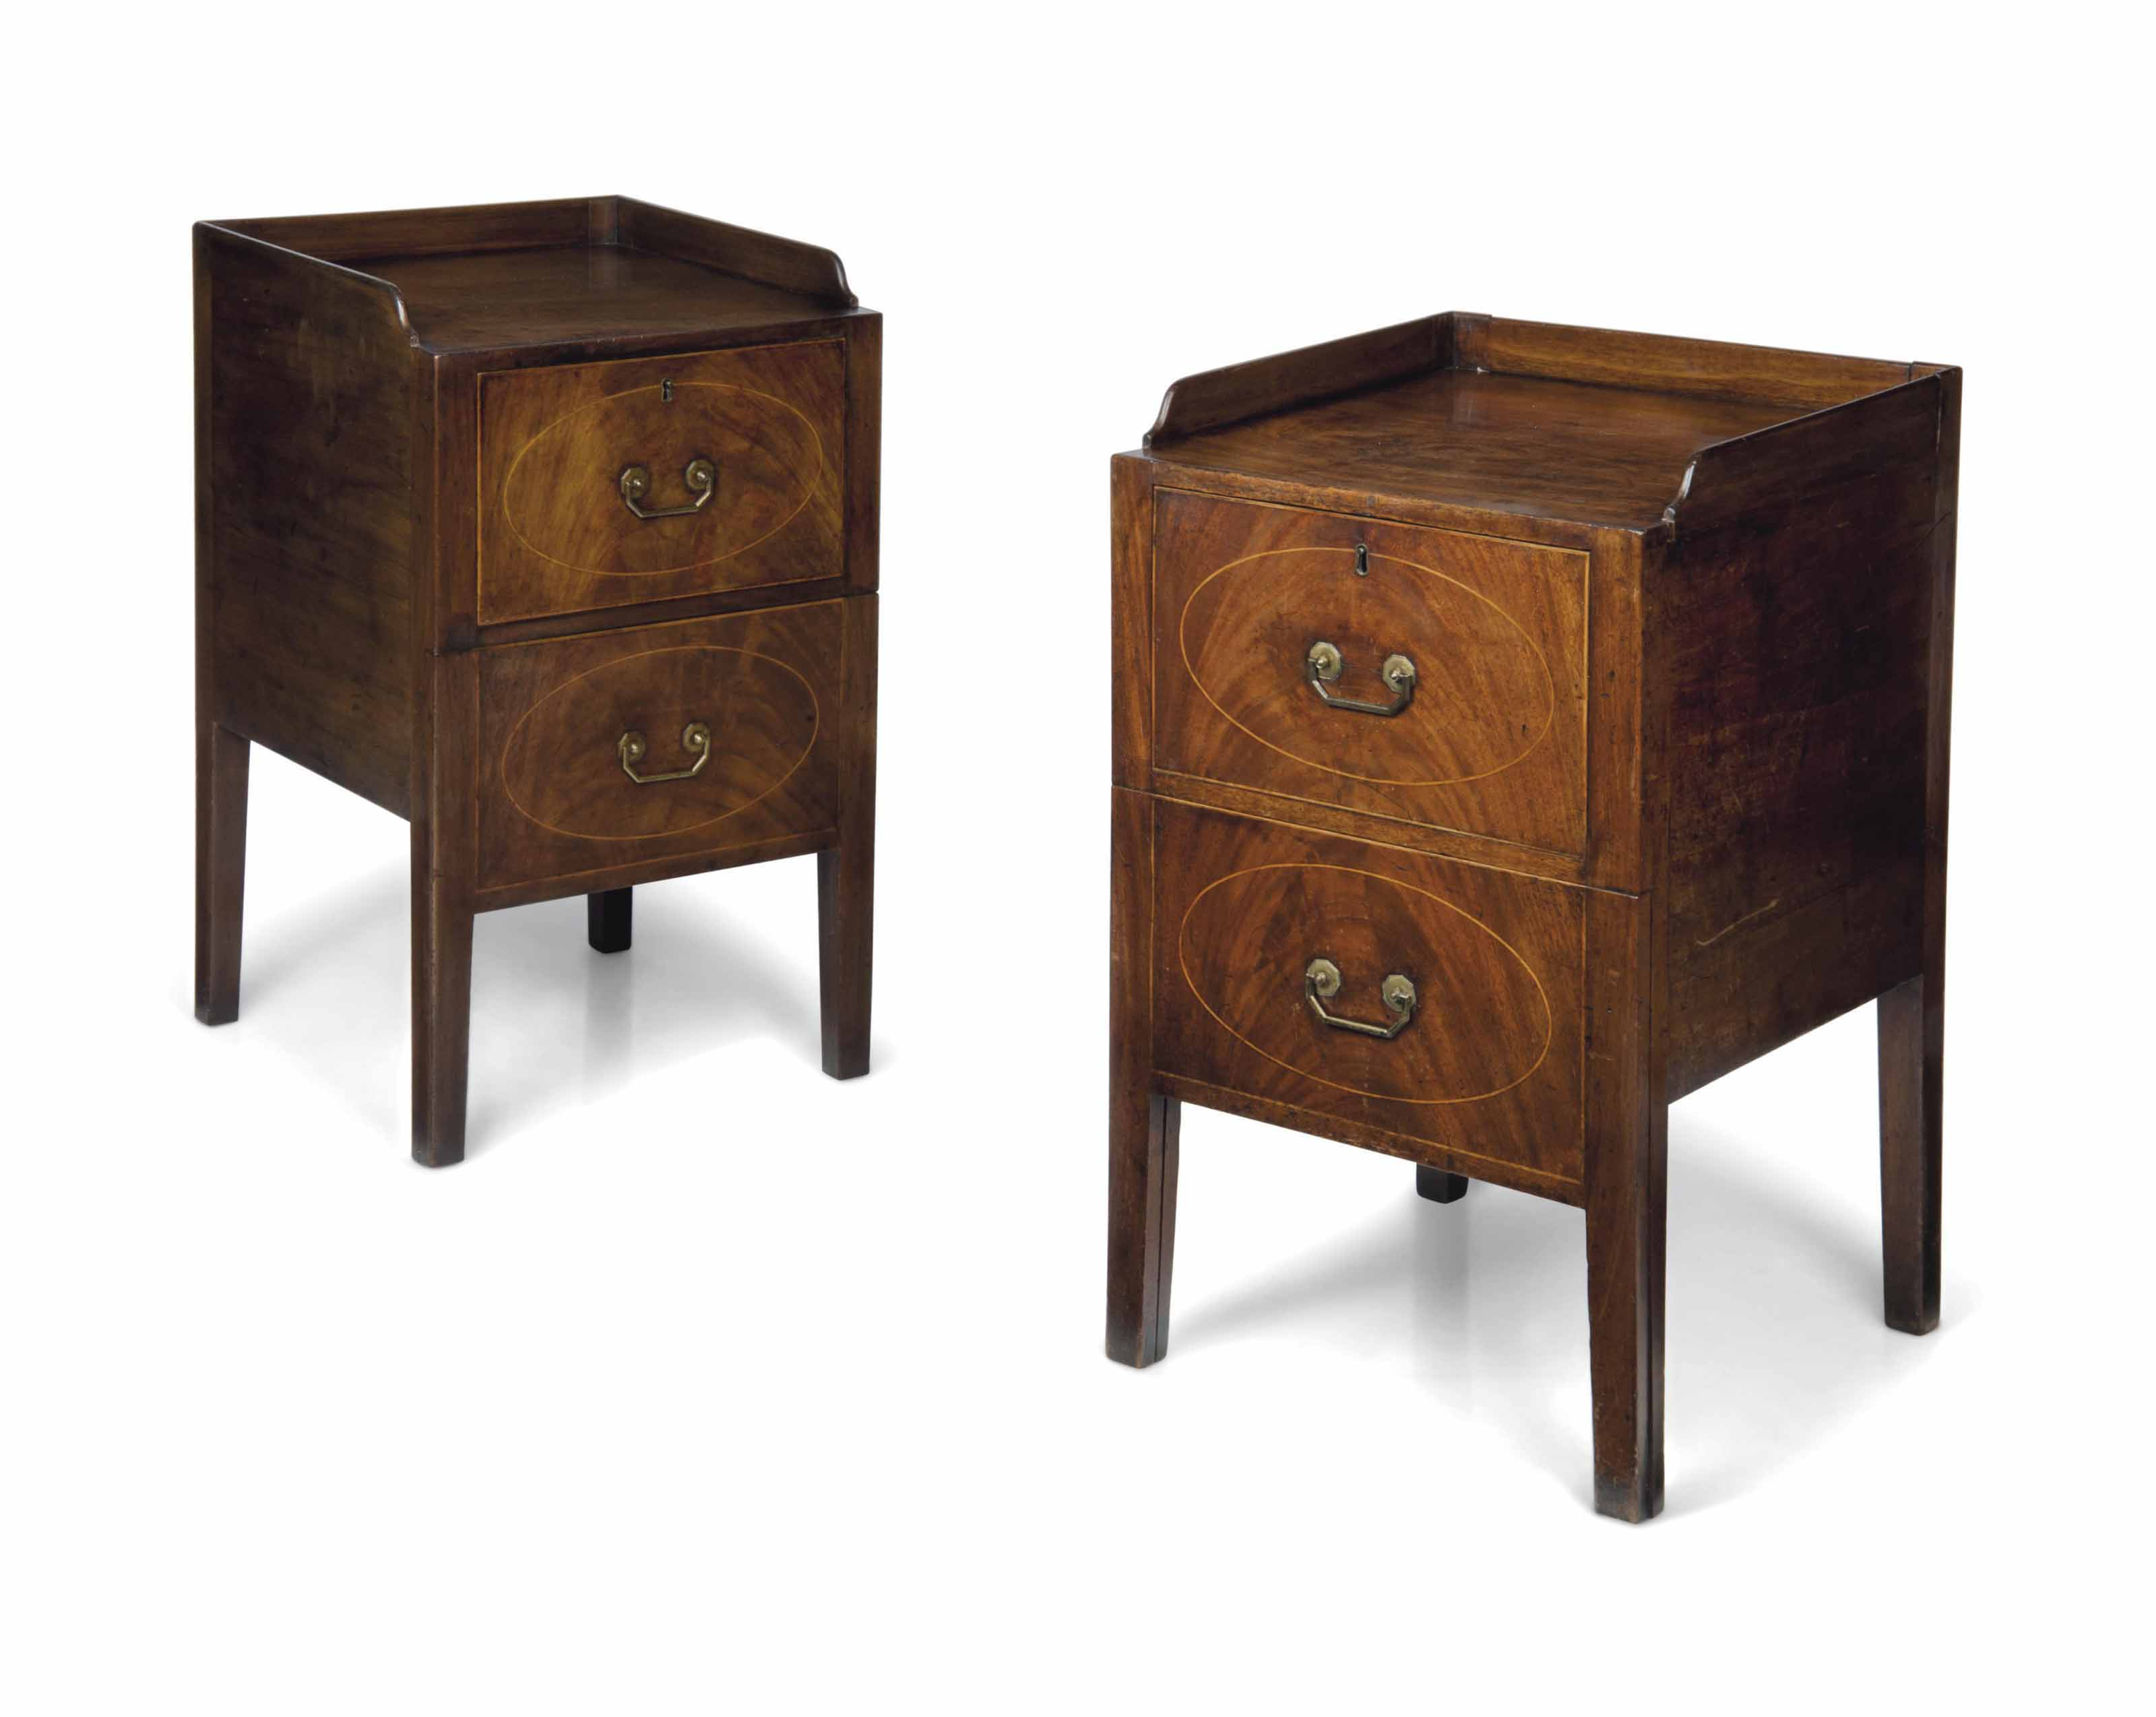 A PAIR OF LATE GEORGE III MAHOGANY TRAY-TOP BEDSIDE CUPBOARD...